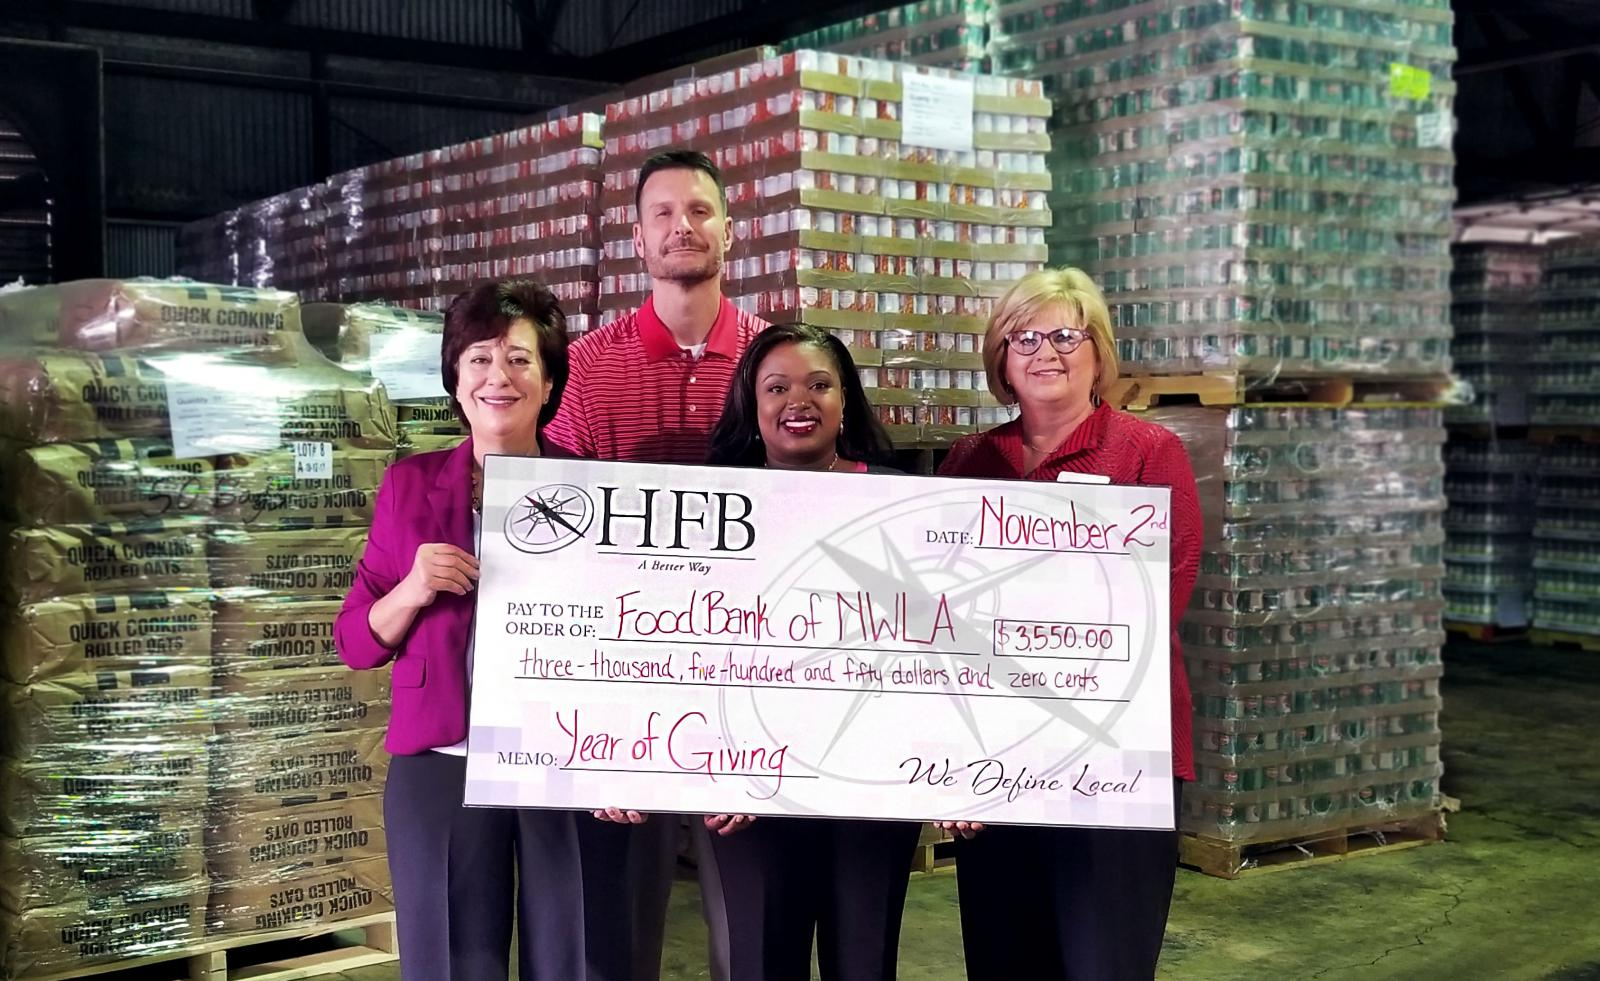 Home Federal Bank's Year of Giving 2017 Recipient, the Food Bank of Northwest Louisiana